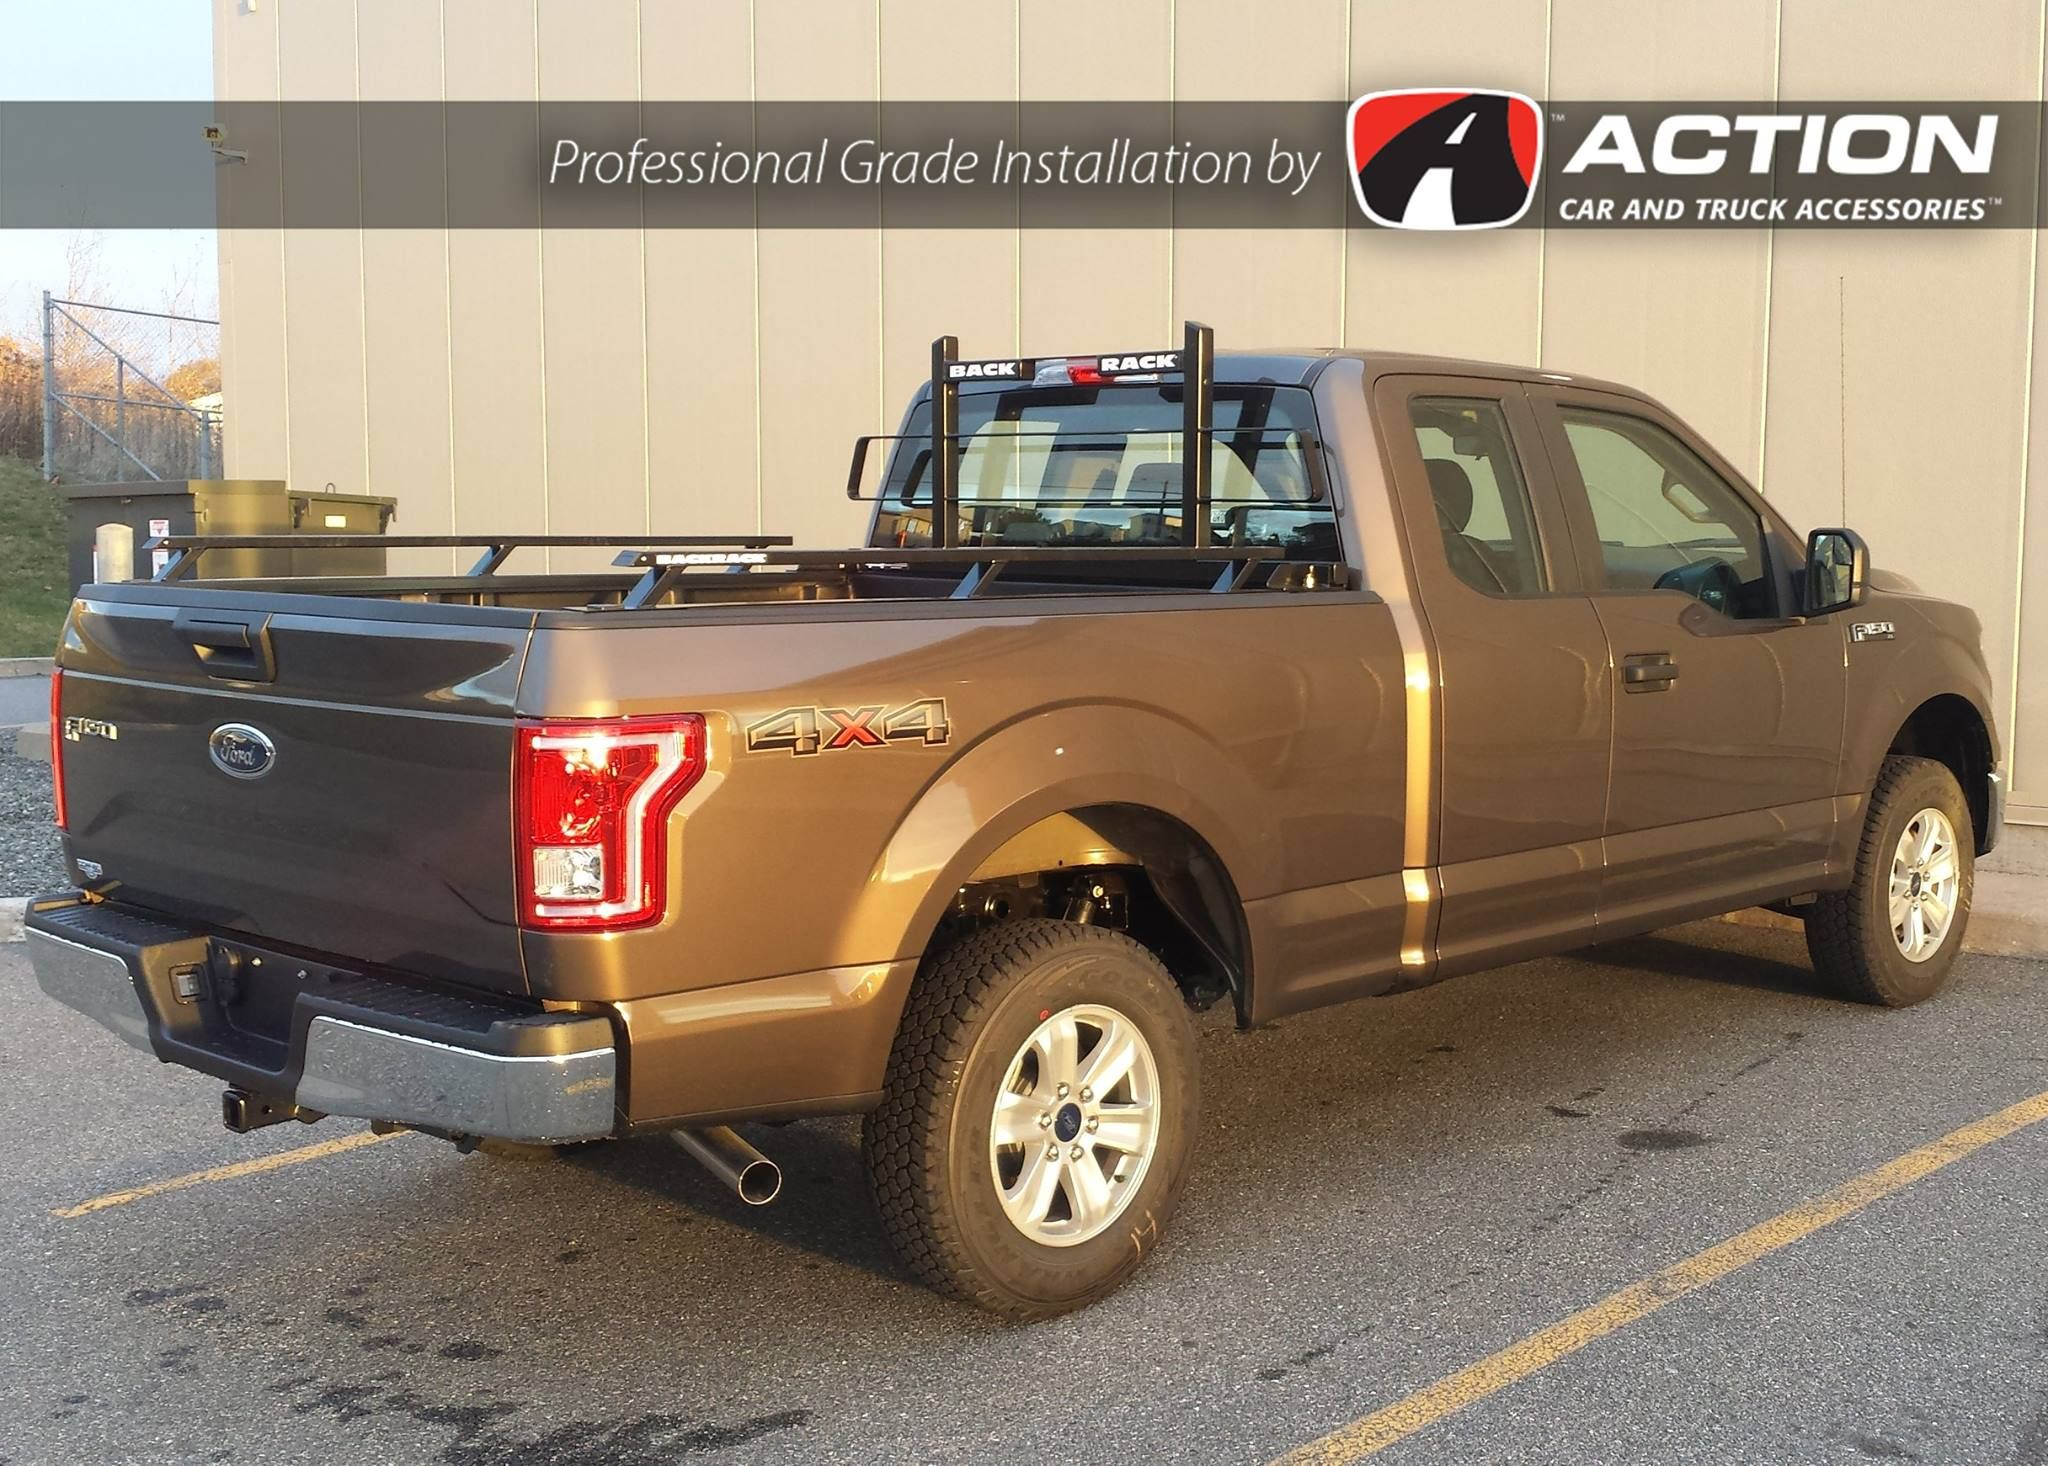 Cab Guard And Bed Rails By Backrack Inc Installed On This New F150 By Our Store In Saint John Nb Profe Truck Accessories Automotive Accessories Antique Cars